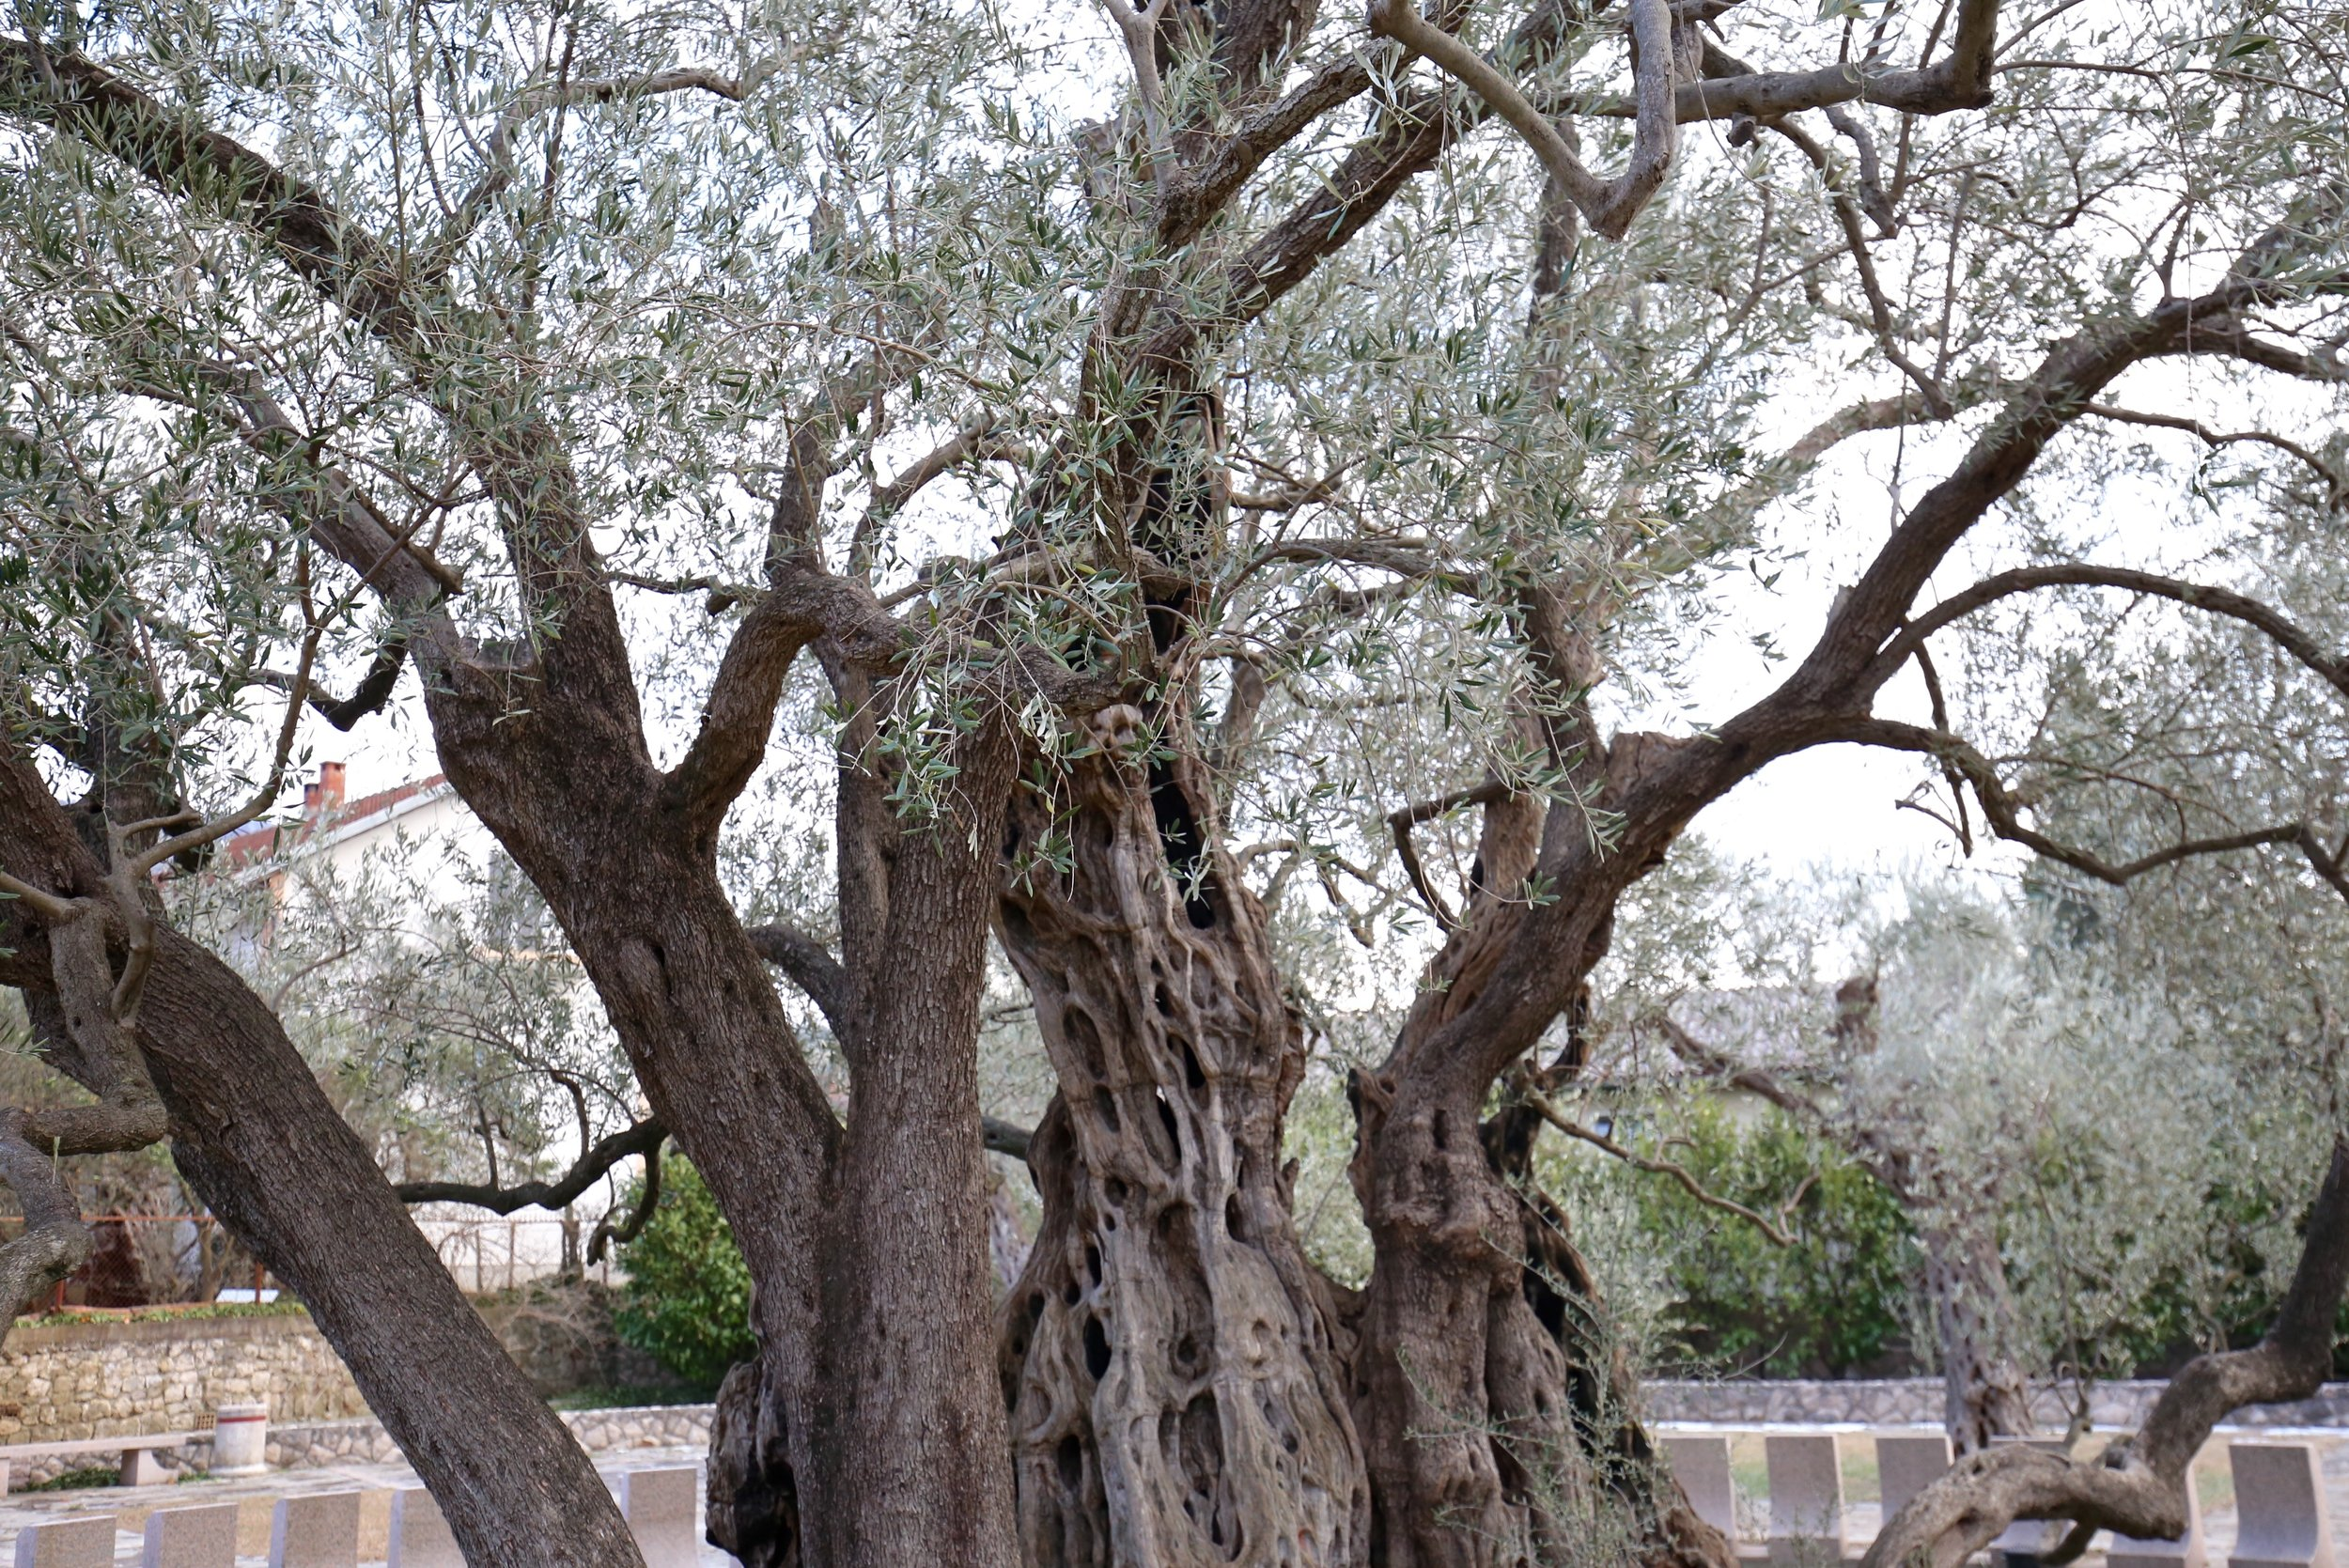 Oldest olive tree - with a twisted trunk.